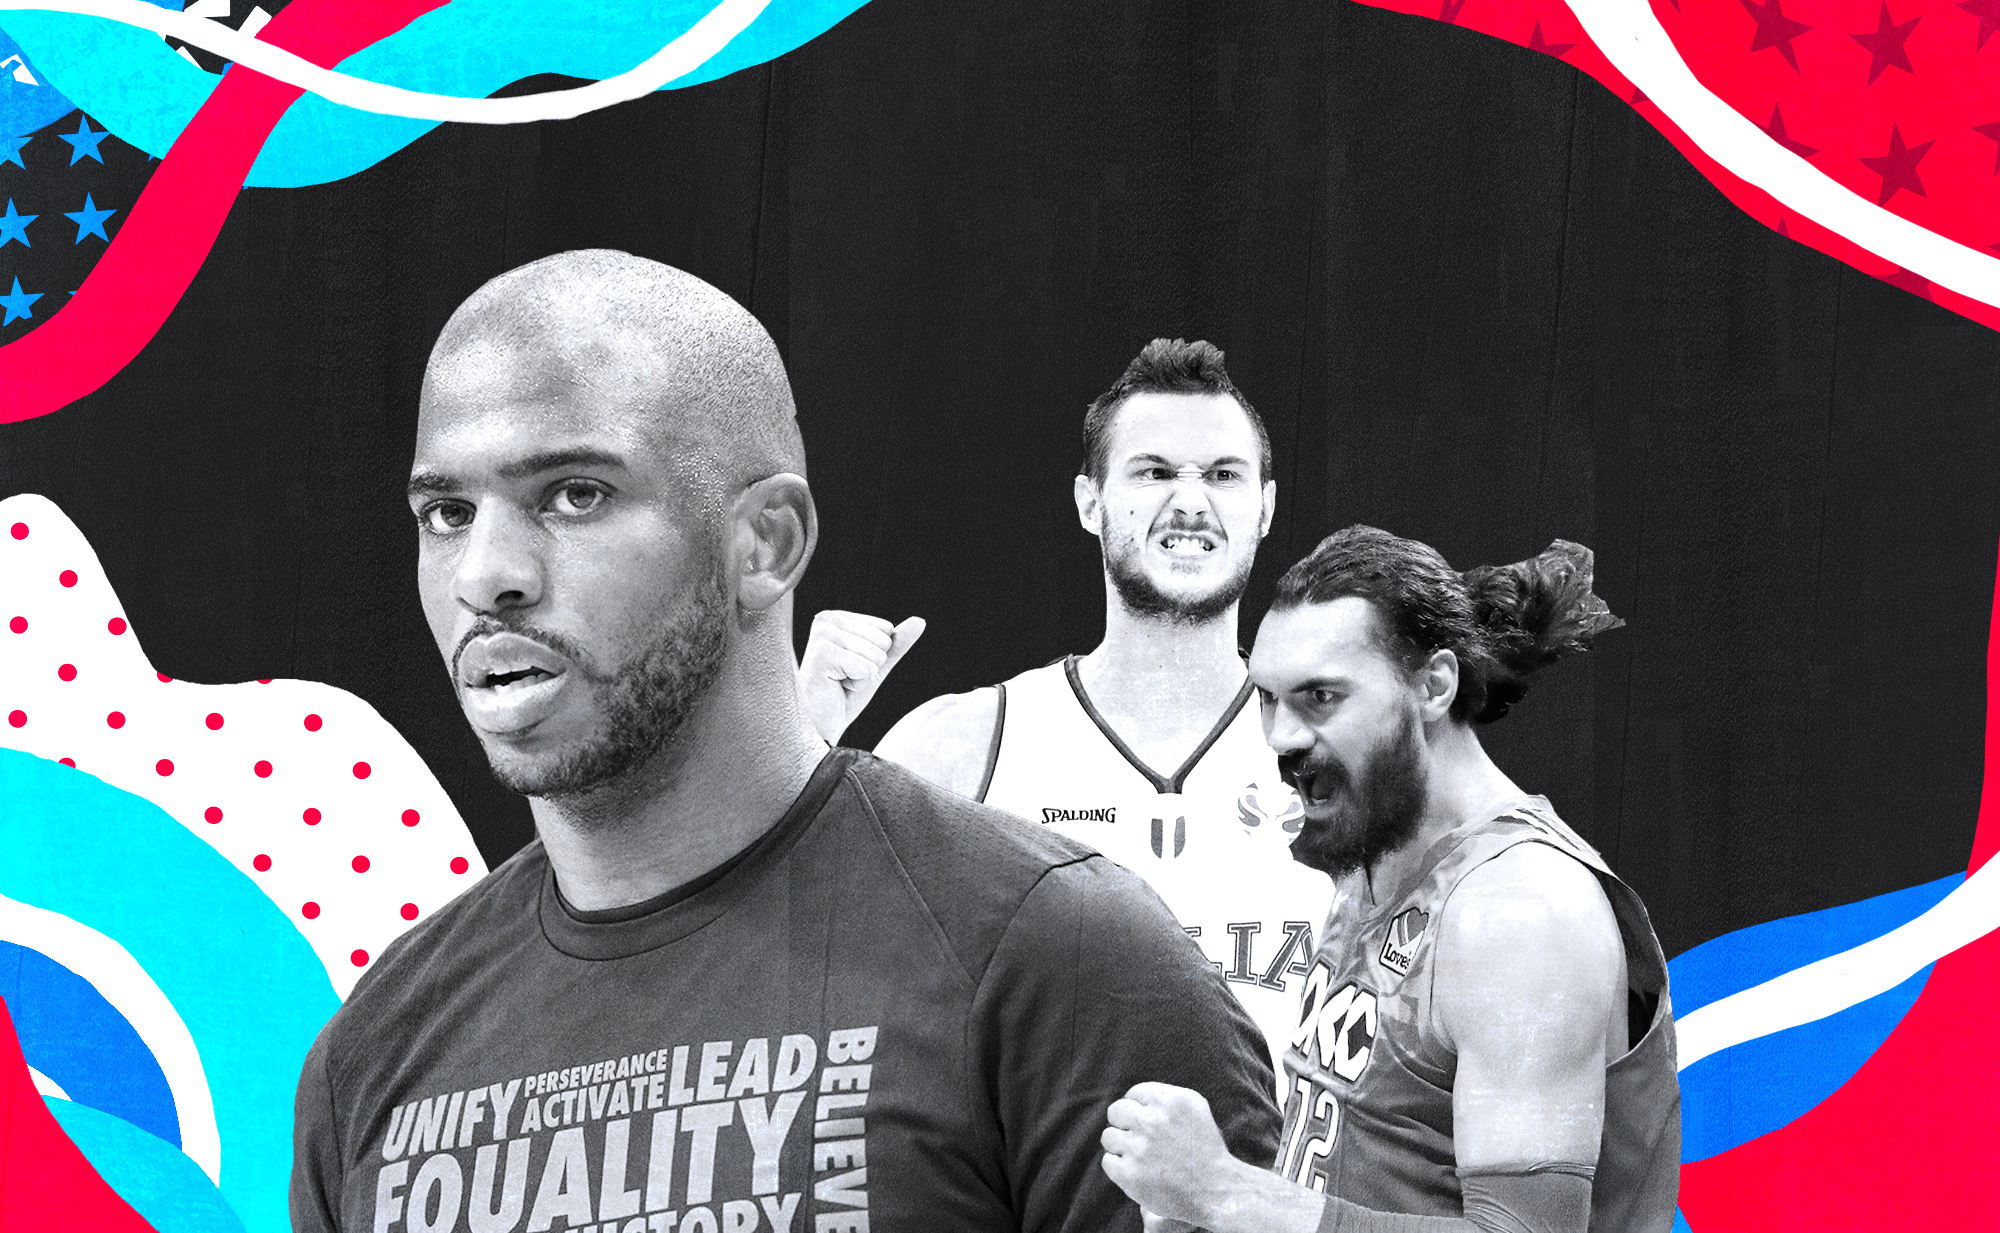 A collage of Chris Paul, Danilo Gallinari, and Steven Adams of the Thunder.